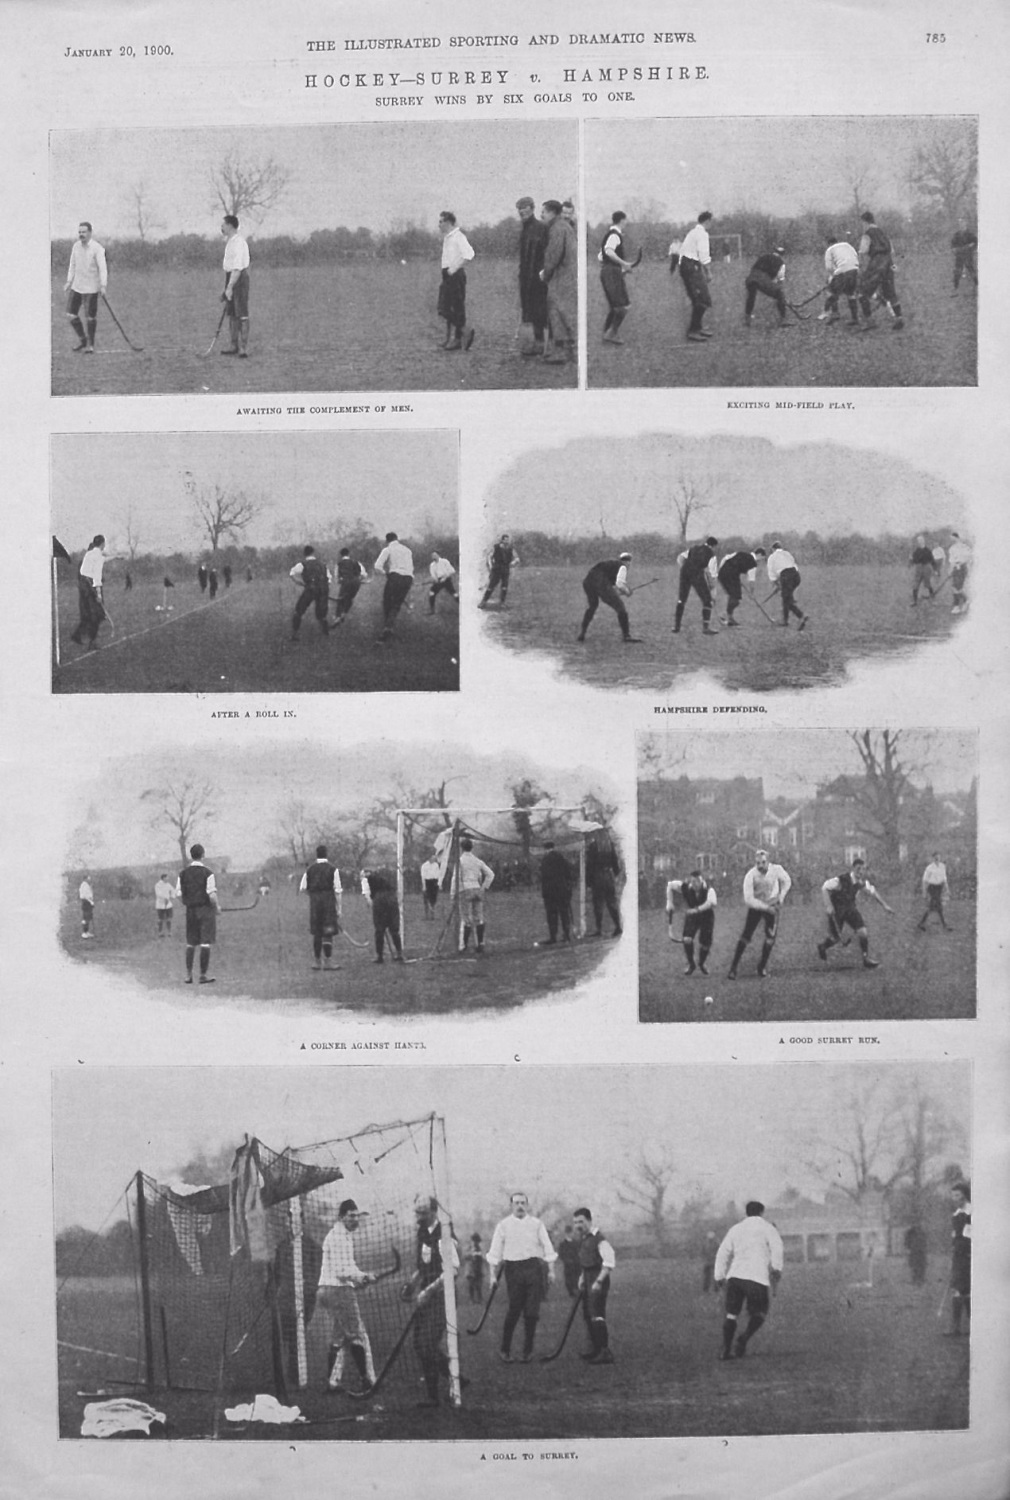 Hockey - Surrey v. Hampshire. 1900